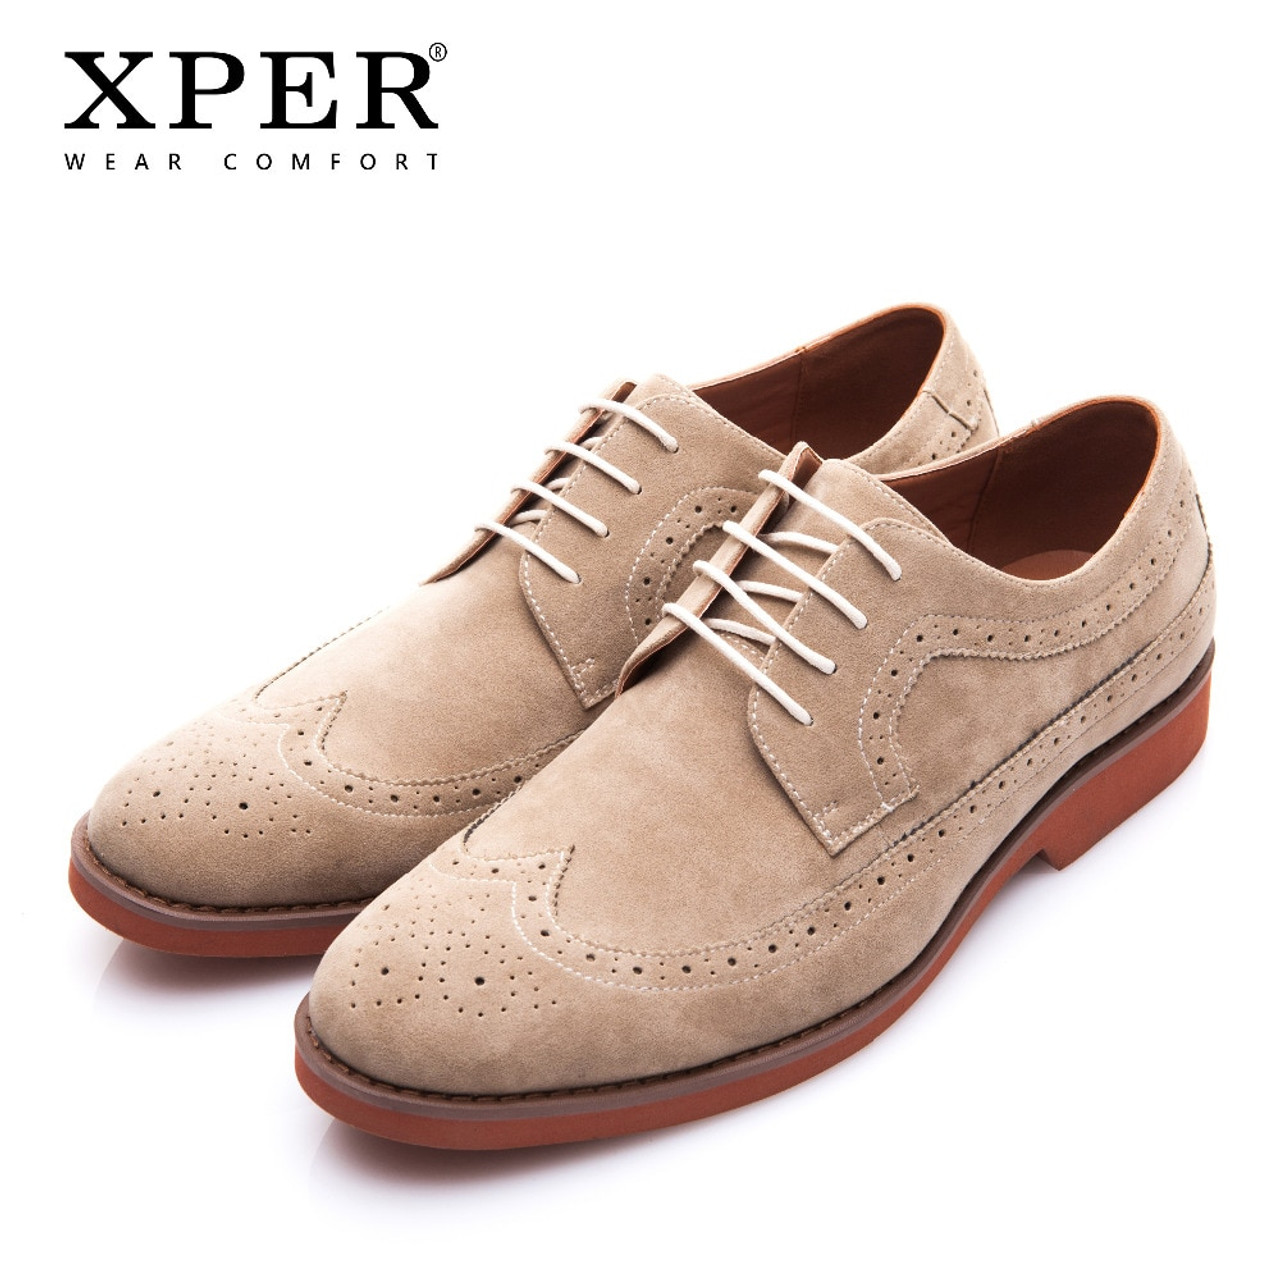 5af279a2f9 XPER Brand Spring Autumn Work Men Dress Shoes Fashion Brogue Shoes Business  Formal Wedding British Style Casual Shoes XAF86762